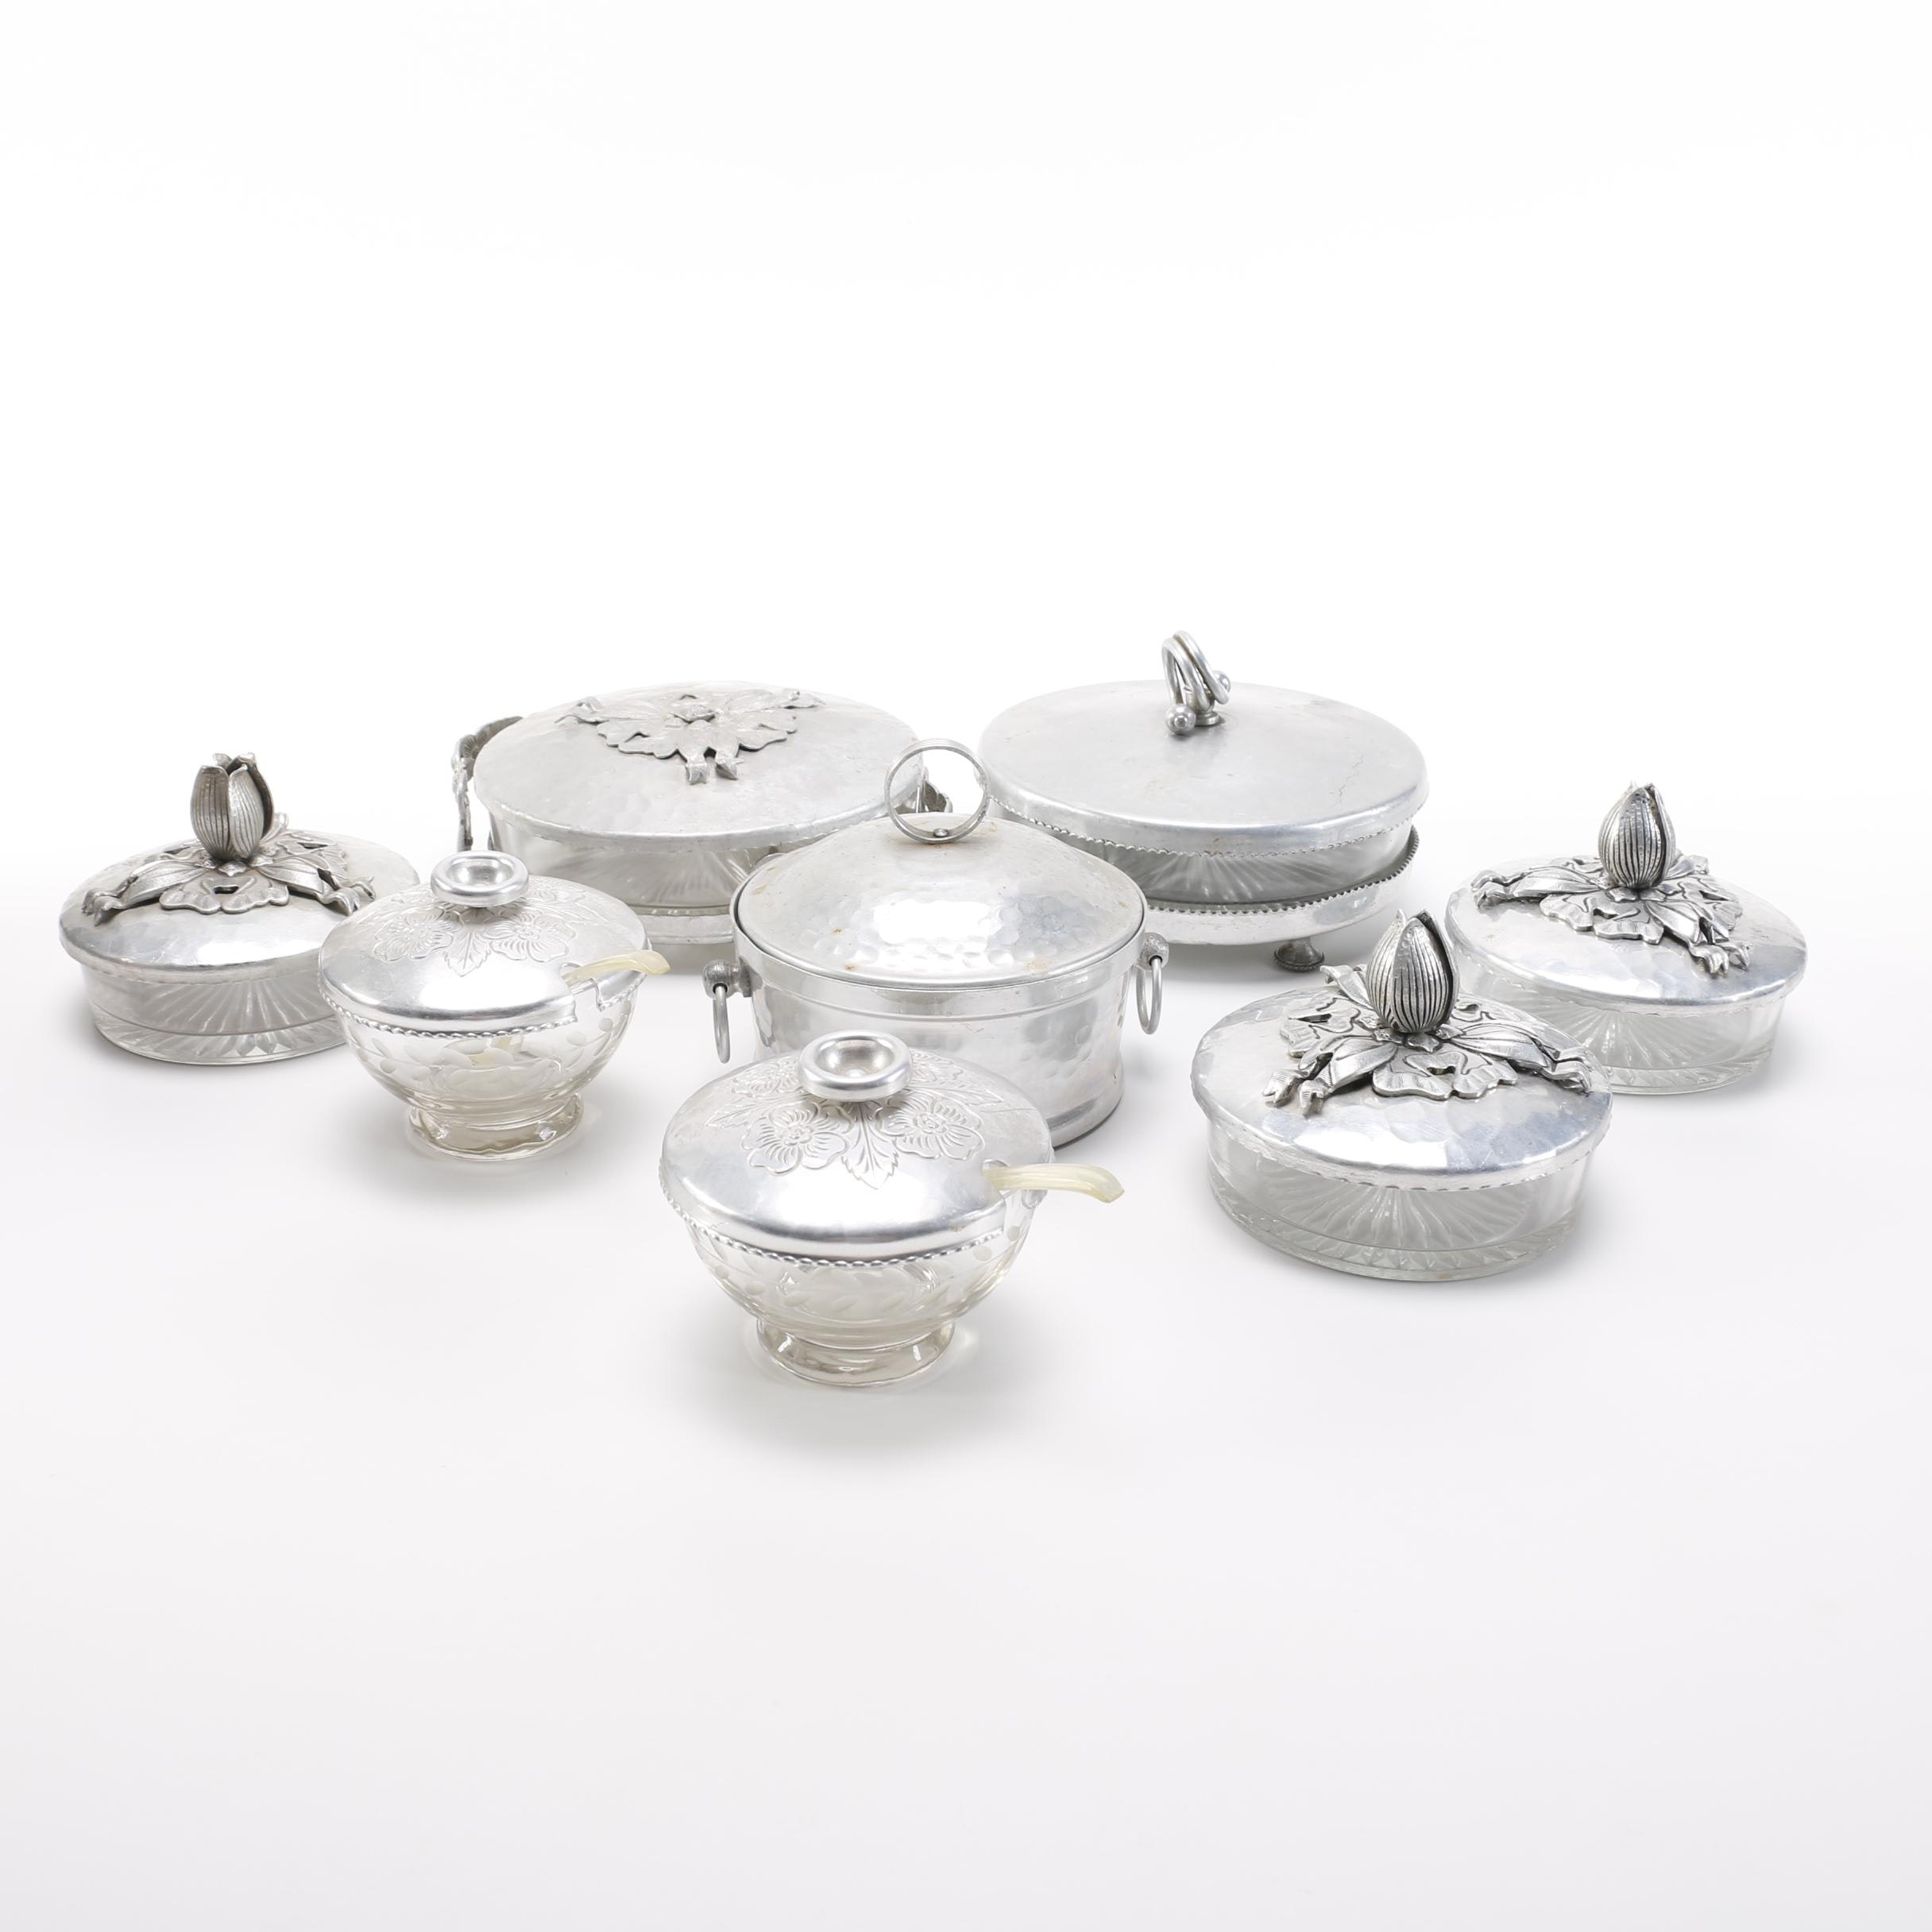 Collection Of Vintage Aluminum Ware With Glass Bases